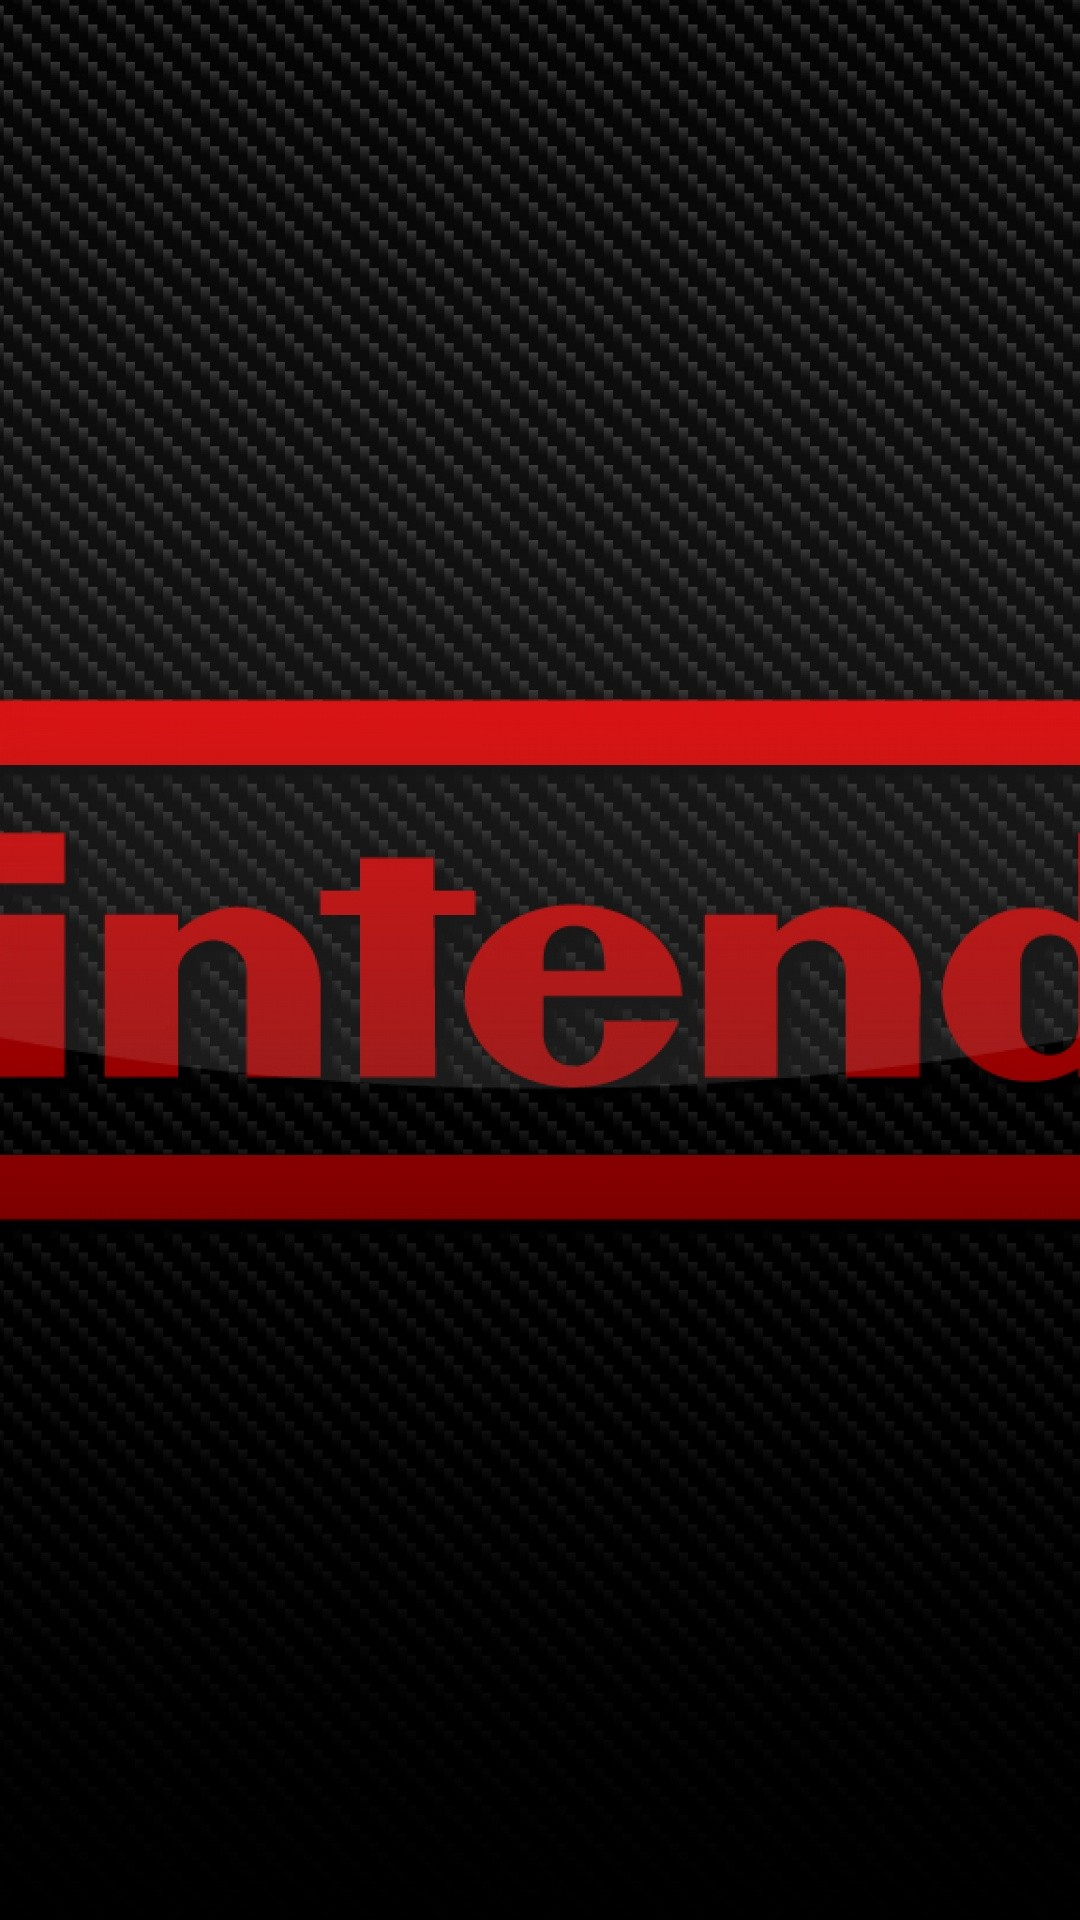 Nintendo Wallpapers Iphone By Steven Woodward 9